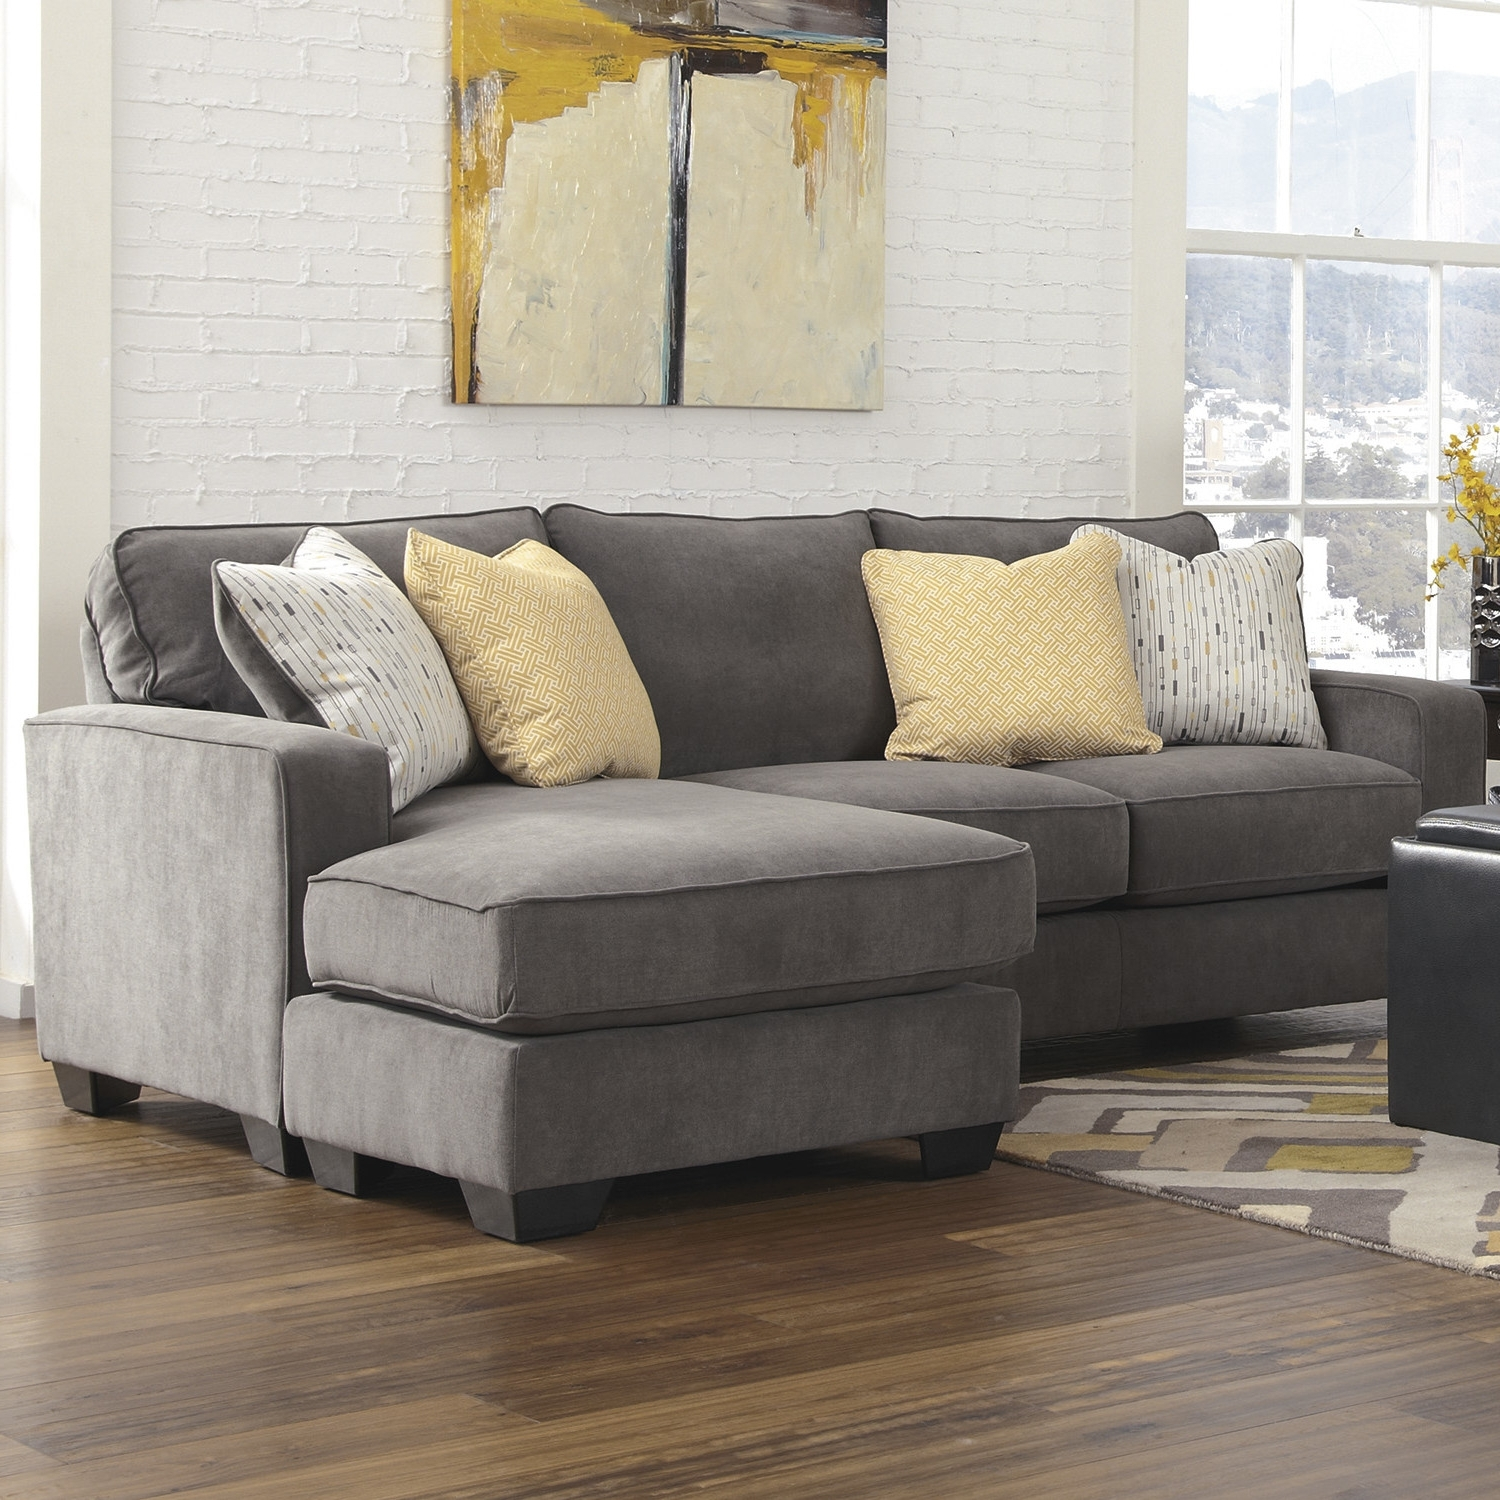 Kessel Reversible Chaise Sectionalmercer41 Review – Furnitures Inside Well Liked Reversible Chaise Sectional Sofas (View 10 of 15)